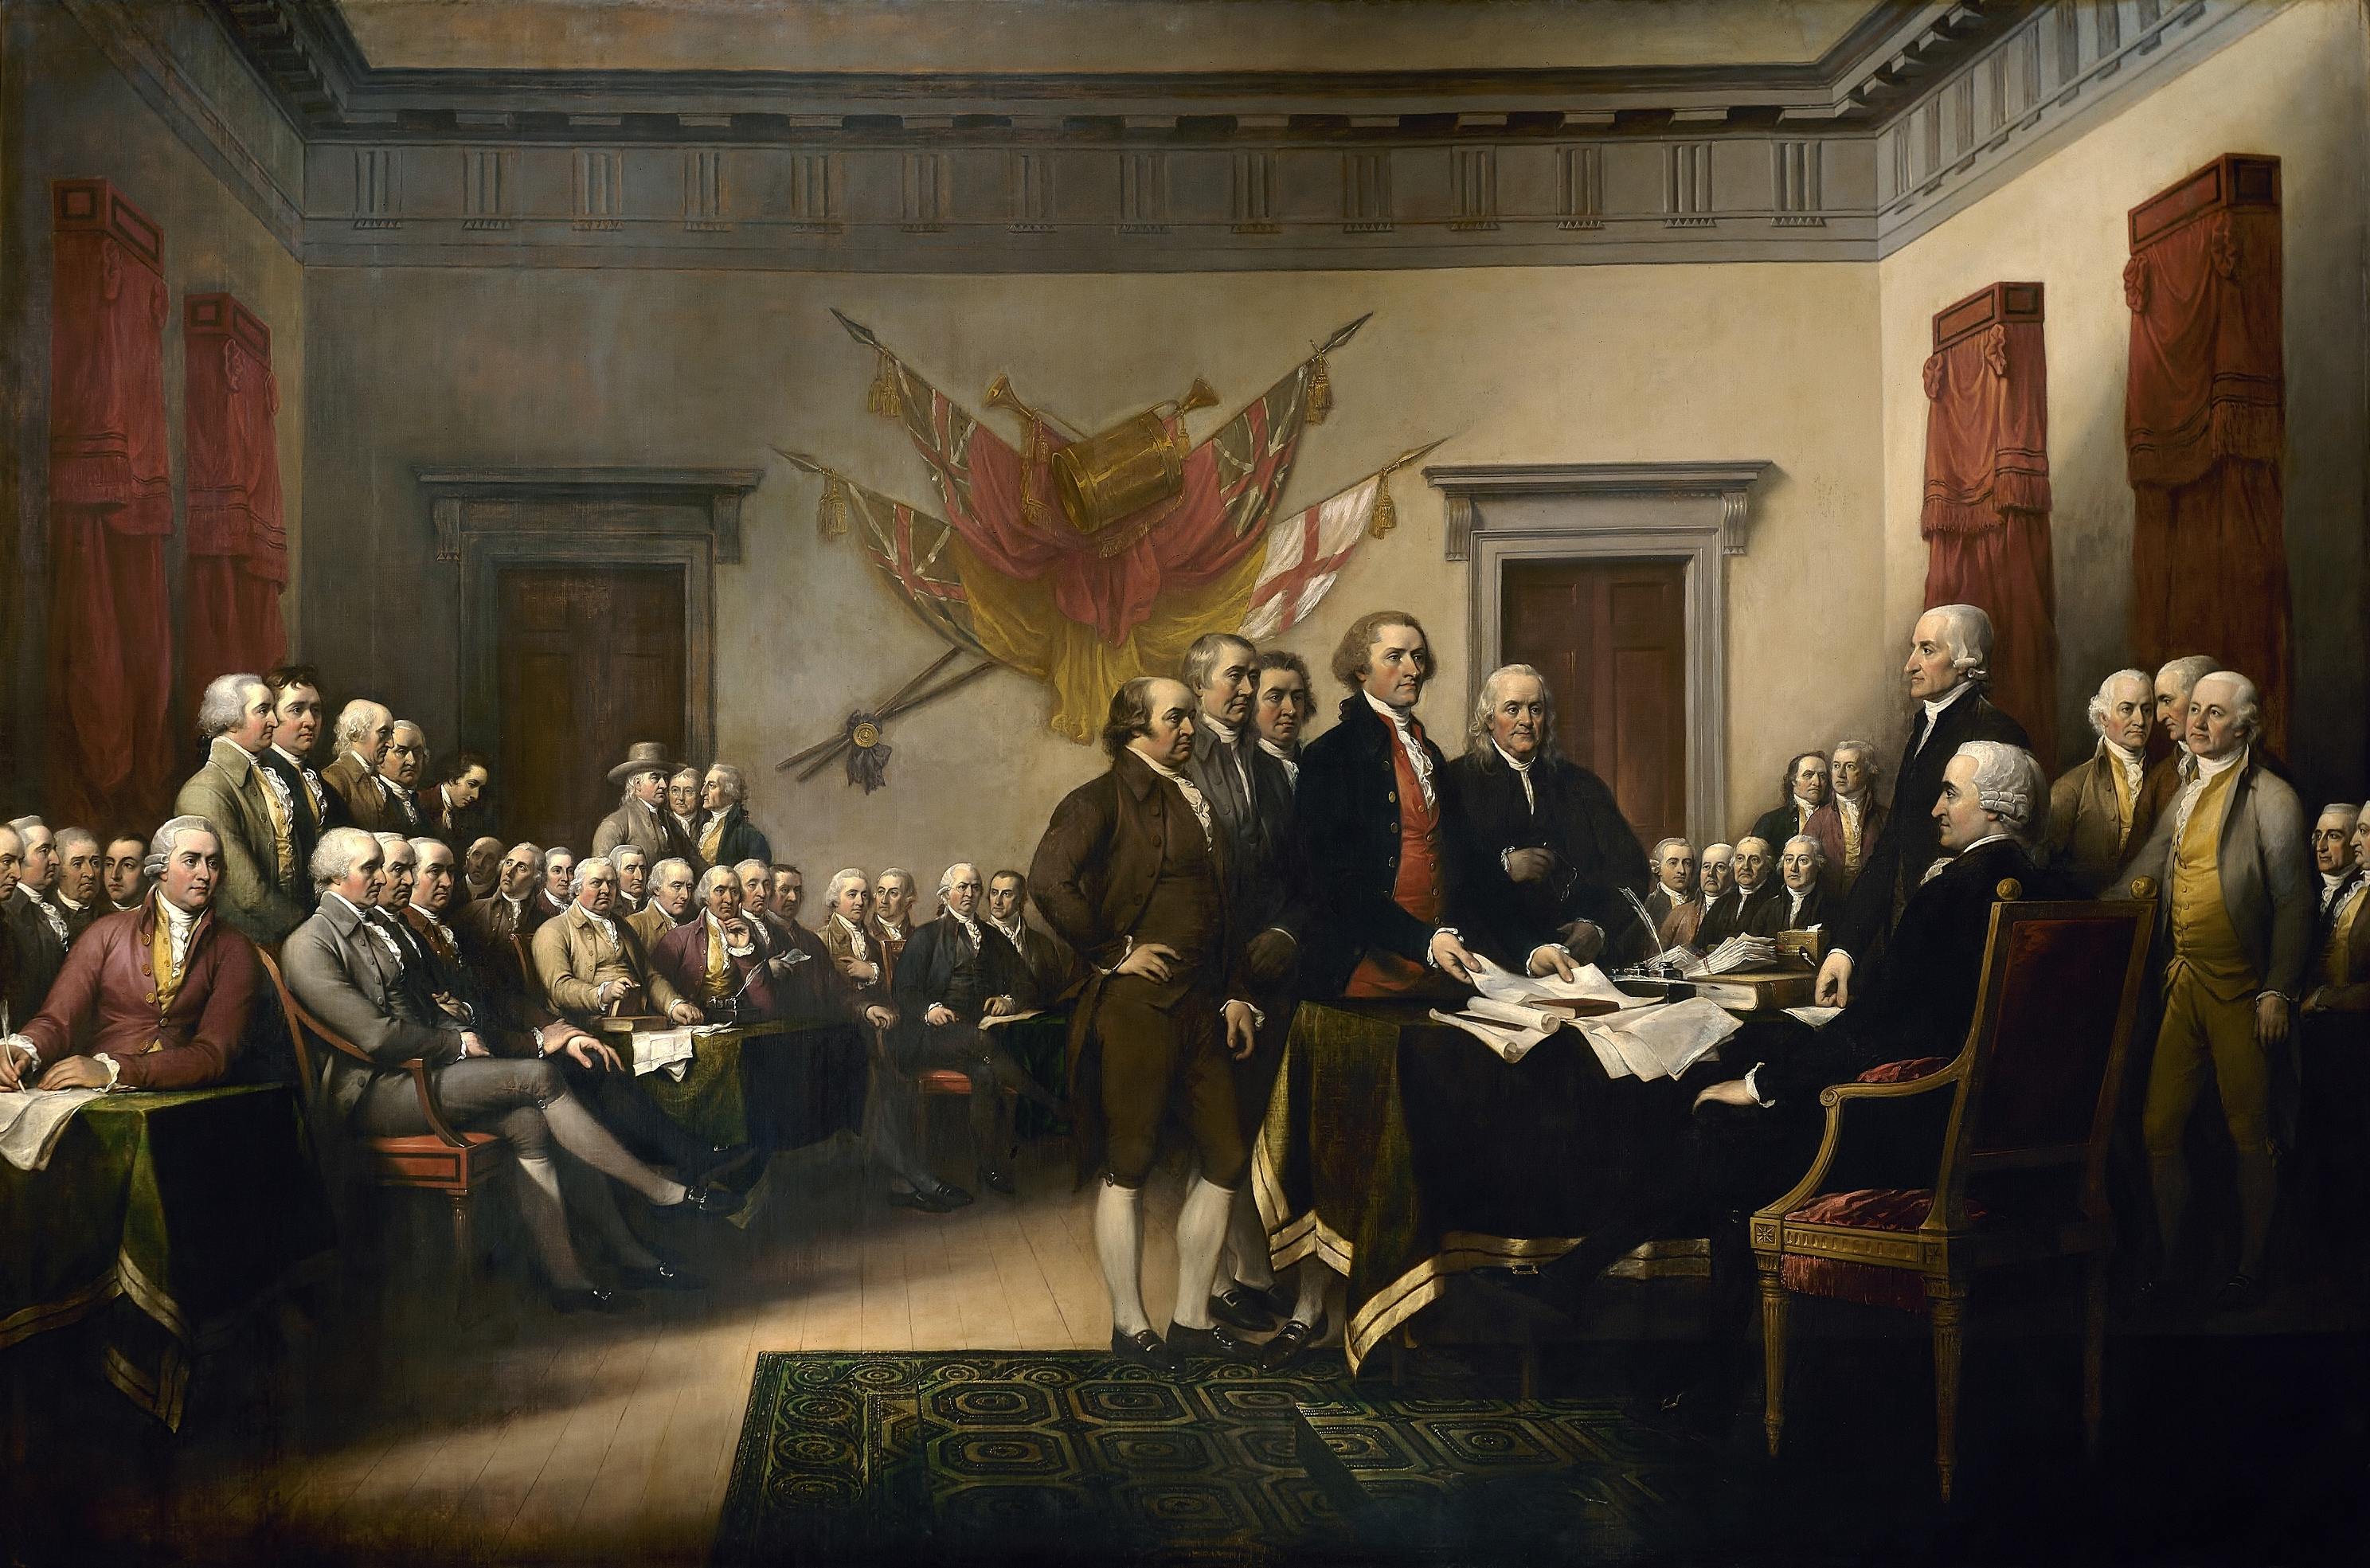 Declaration of Independence, a painting by John Trumbull depicting the Committee of Five presenting their draft of the Declaration of Independence to the Congress on June 28, 1776. Public Domain via Wikimedia Commons.